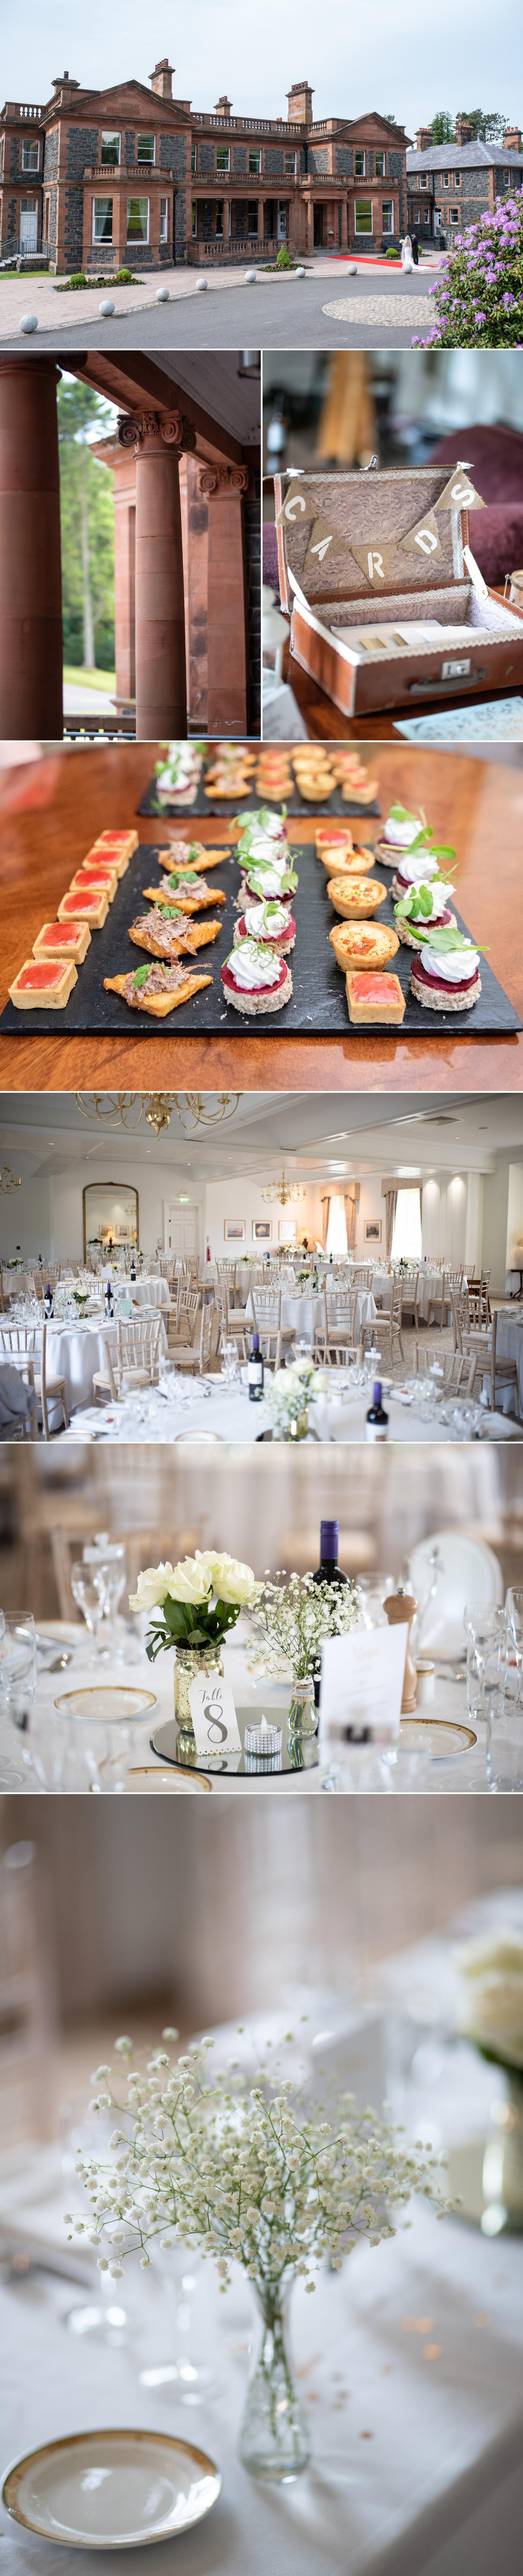 Cultra Manor Wedding Bangor 15.jpg